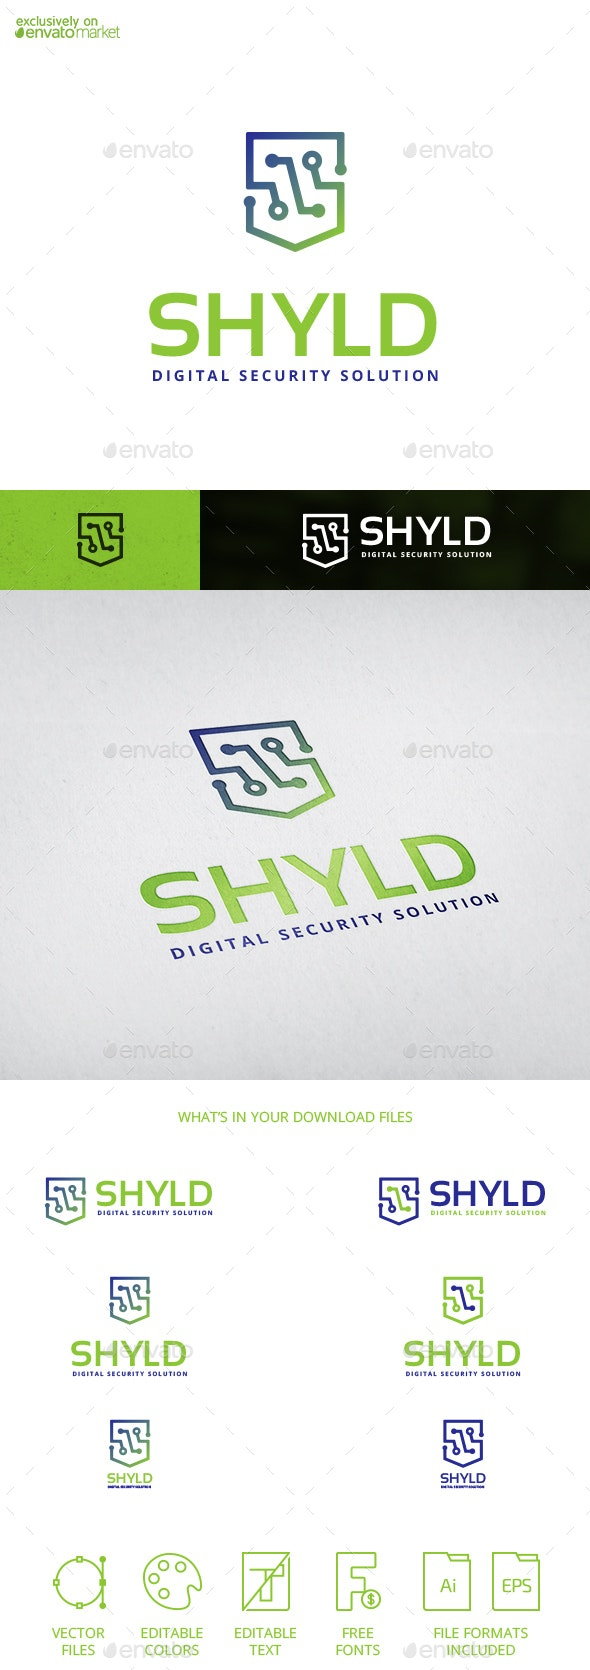 Shyld Digital Shield Security Letter S Logo Temaplate - Abstract Logo Templates